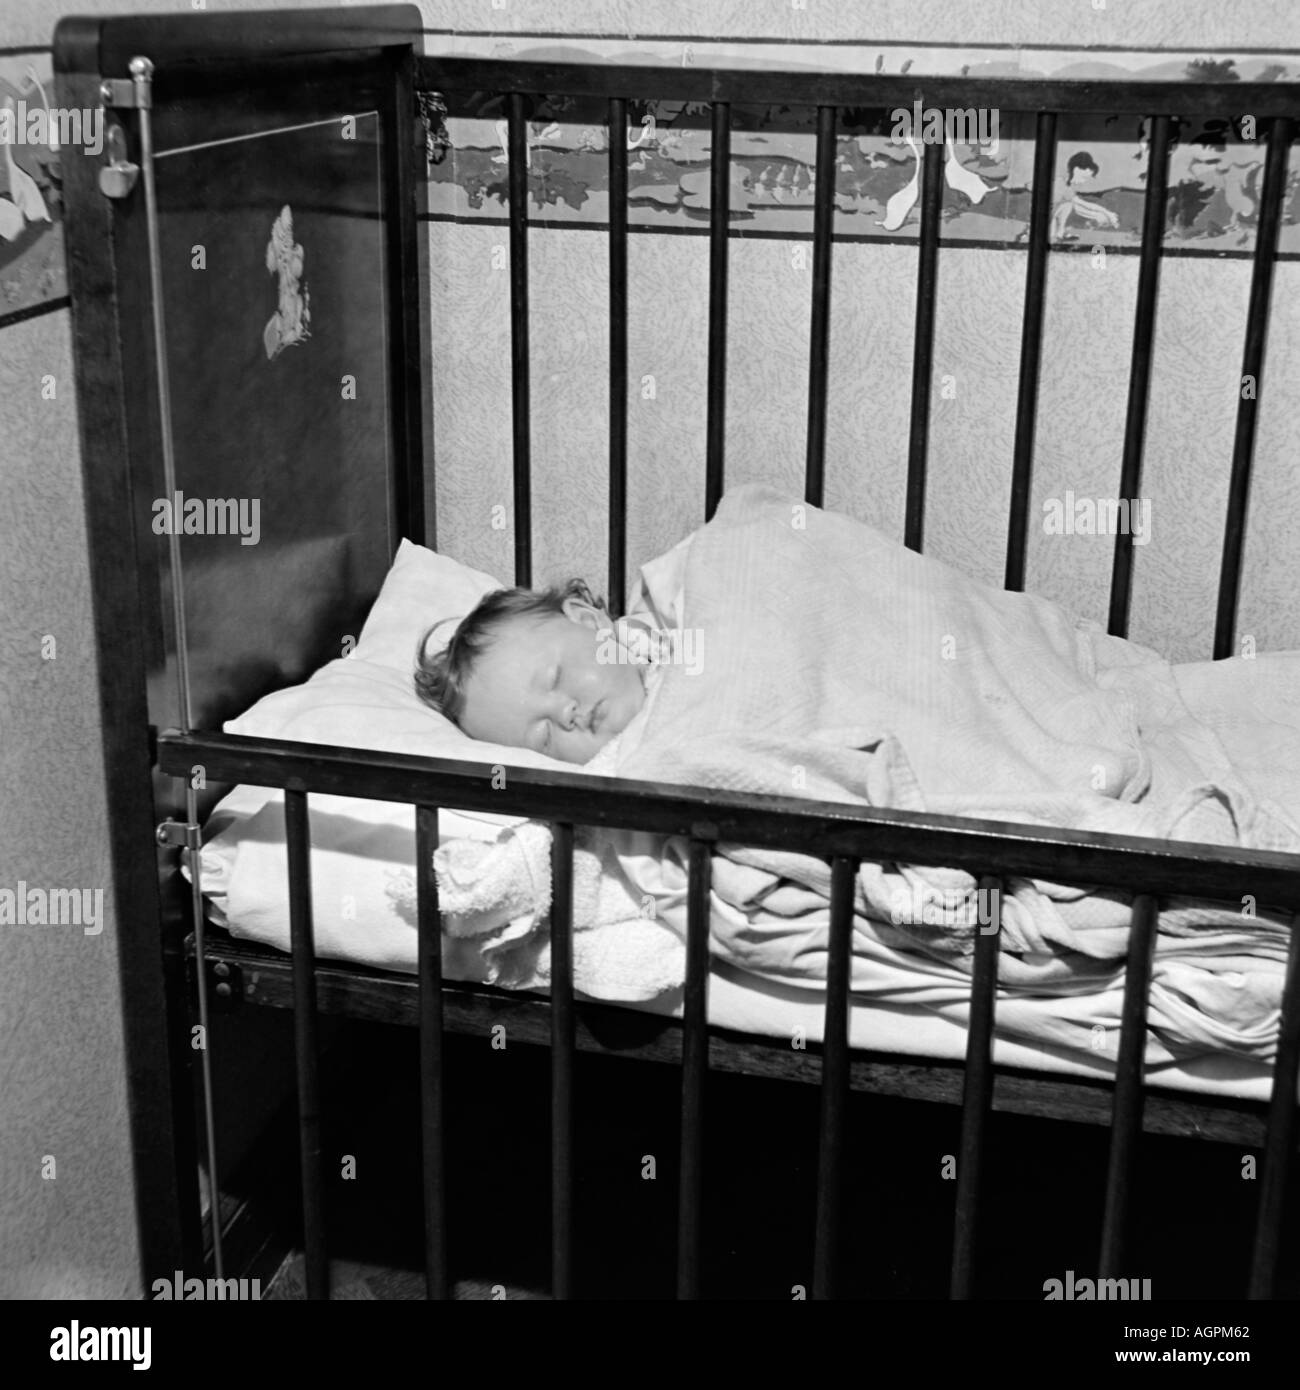 OLD VINTAGE FAMILY PHOTOGRAPH SNAP SHOT BABY GIRL SLEEPING IN NURSERY COT Stock Photo